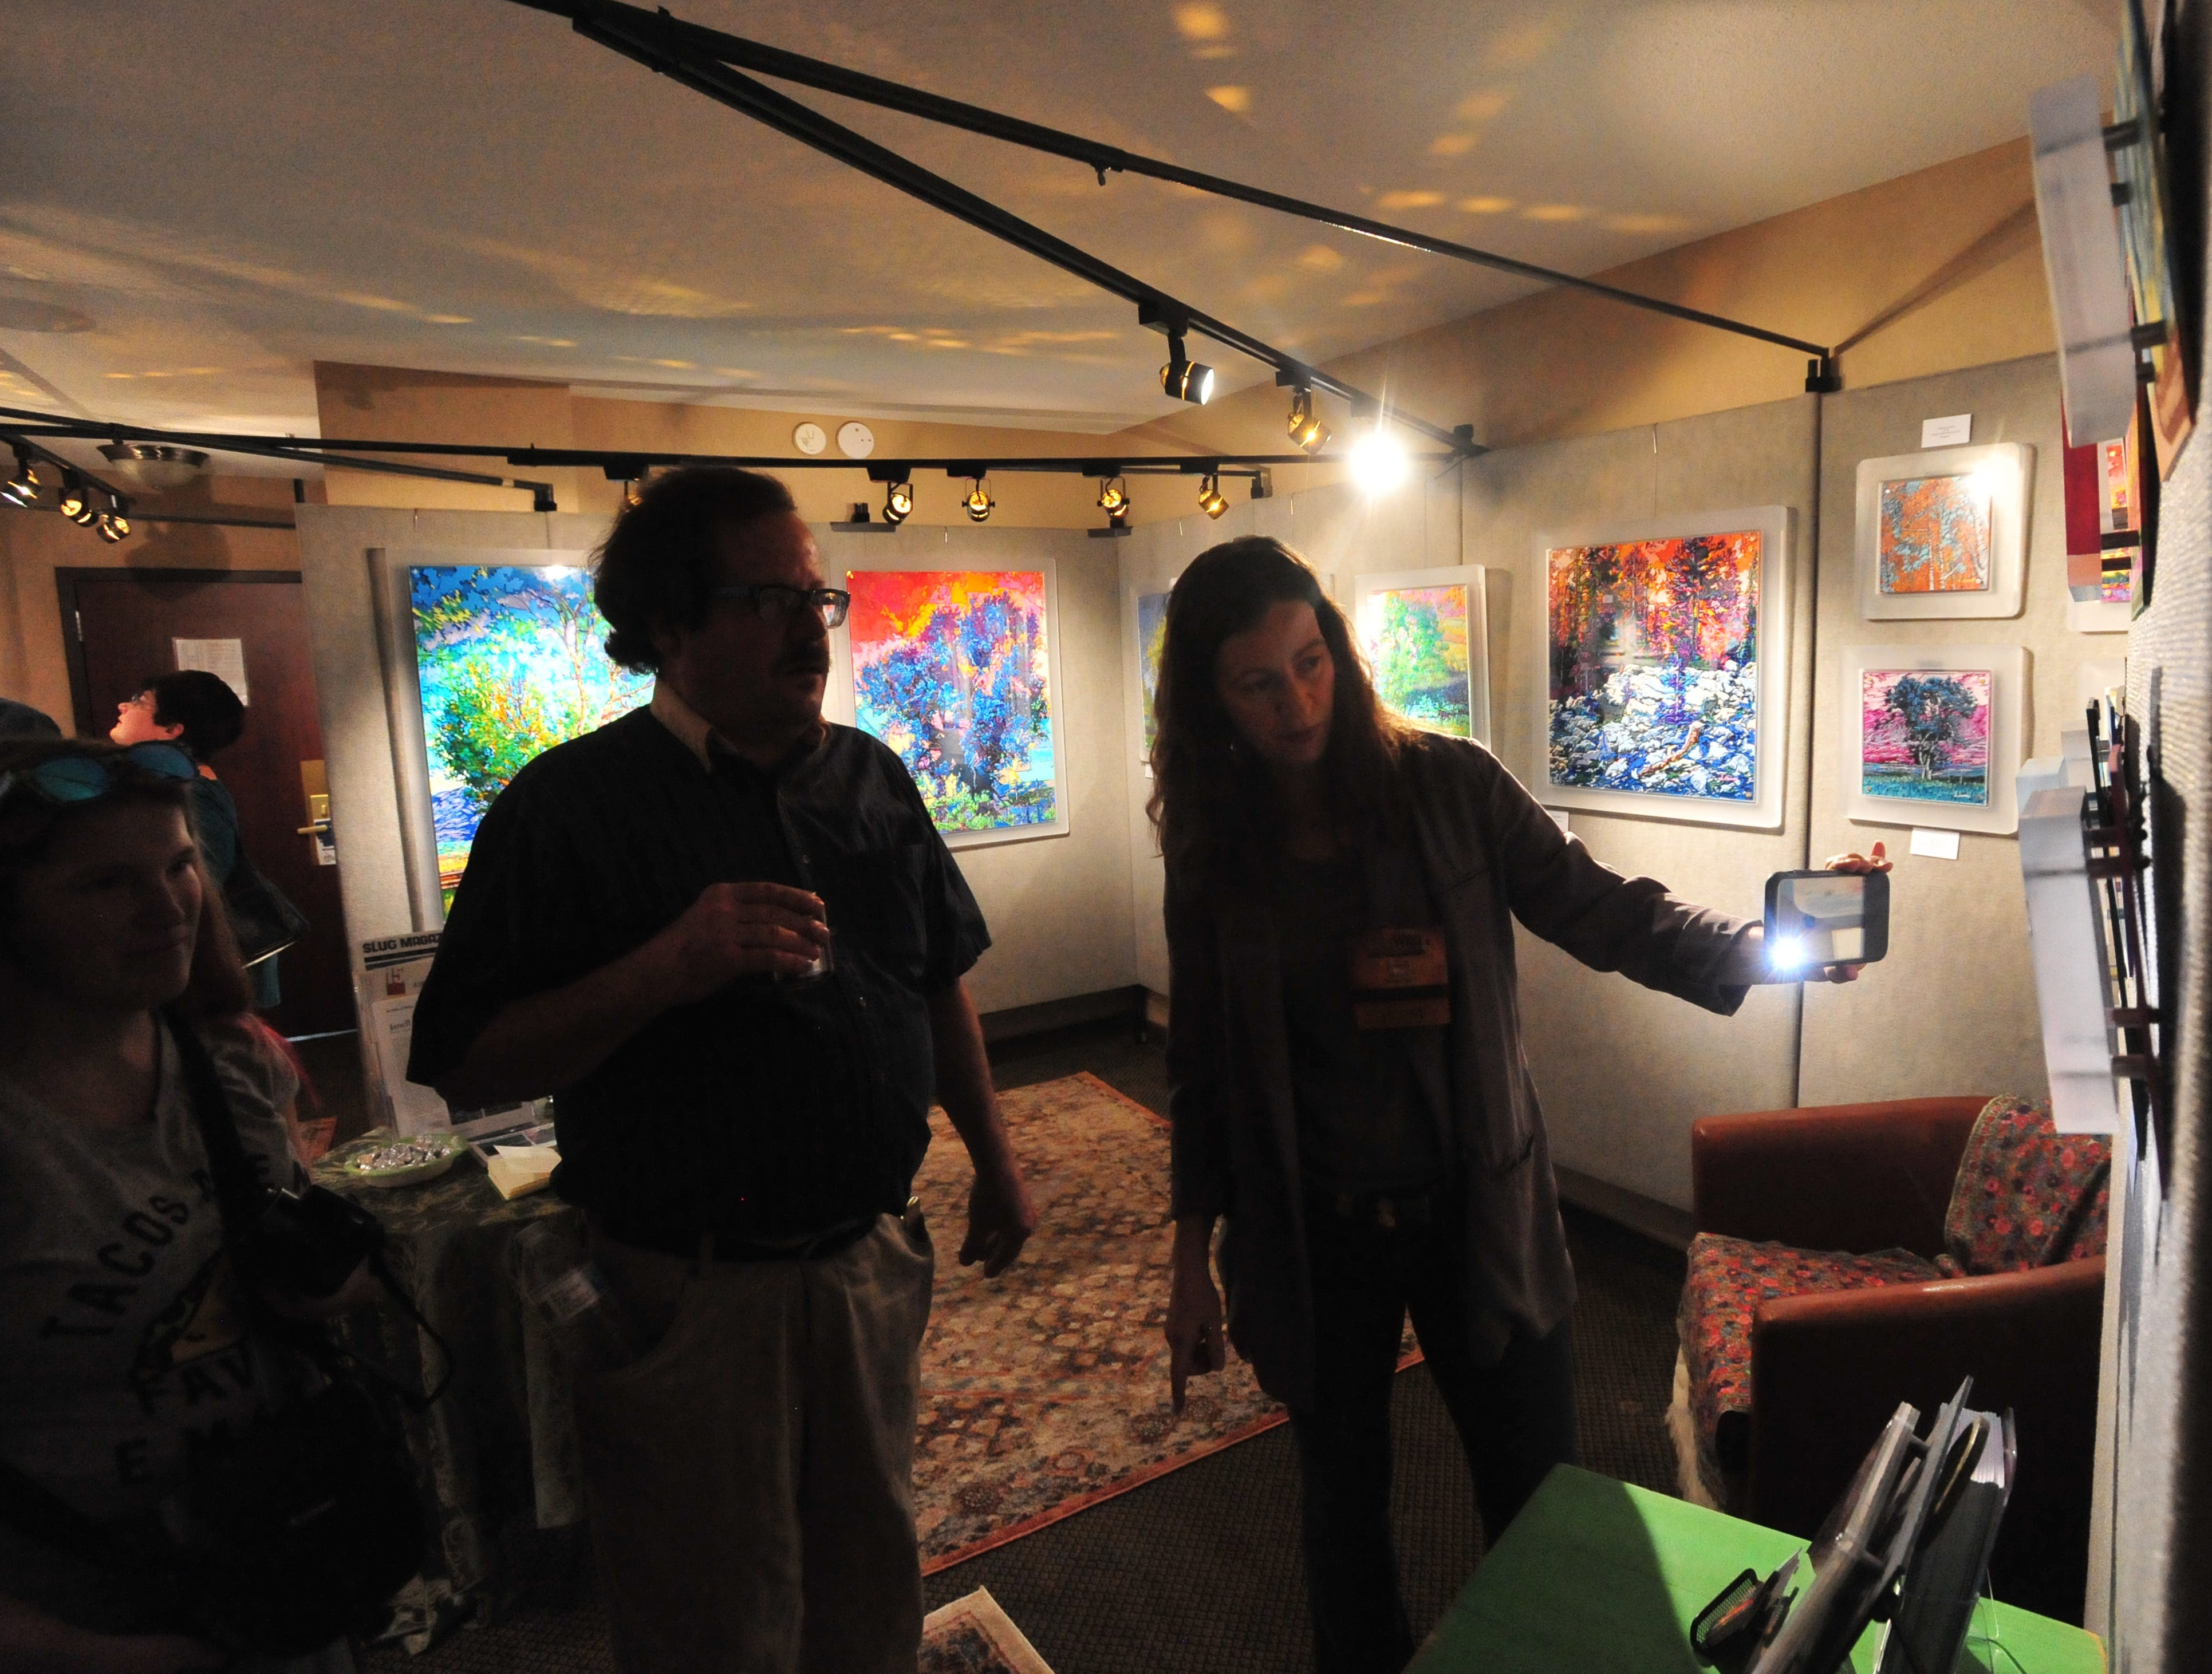 Artist Janell James talks about her work in her room at the Out West Art Show in the Heritage Inn.